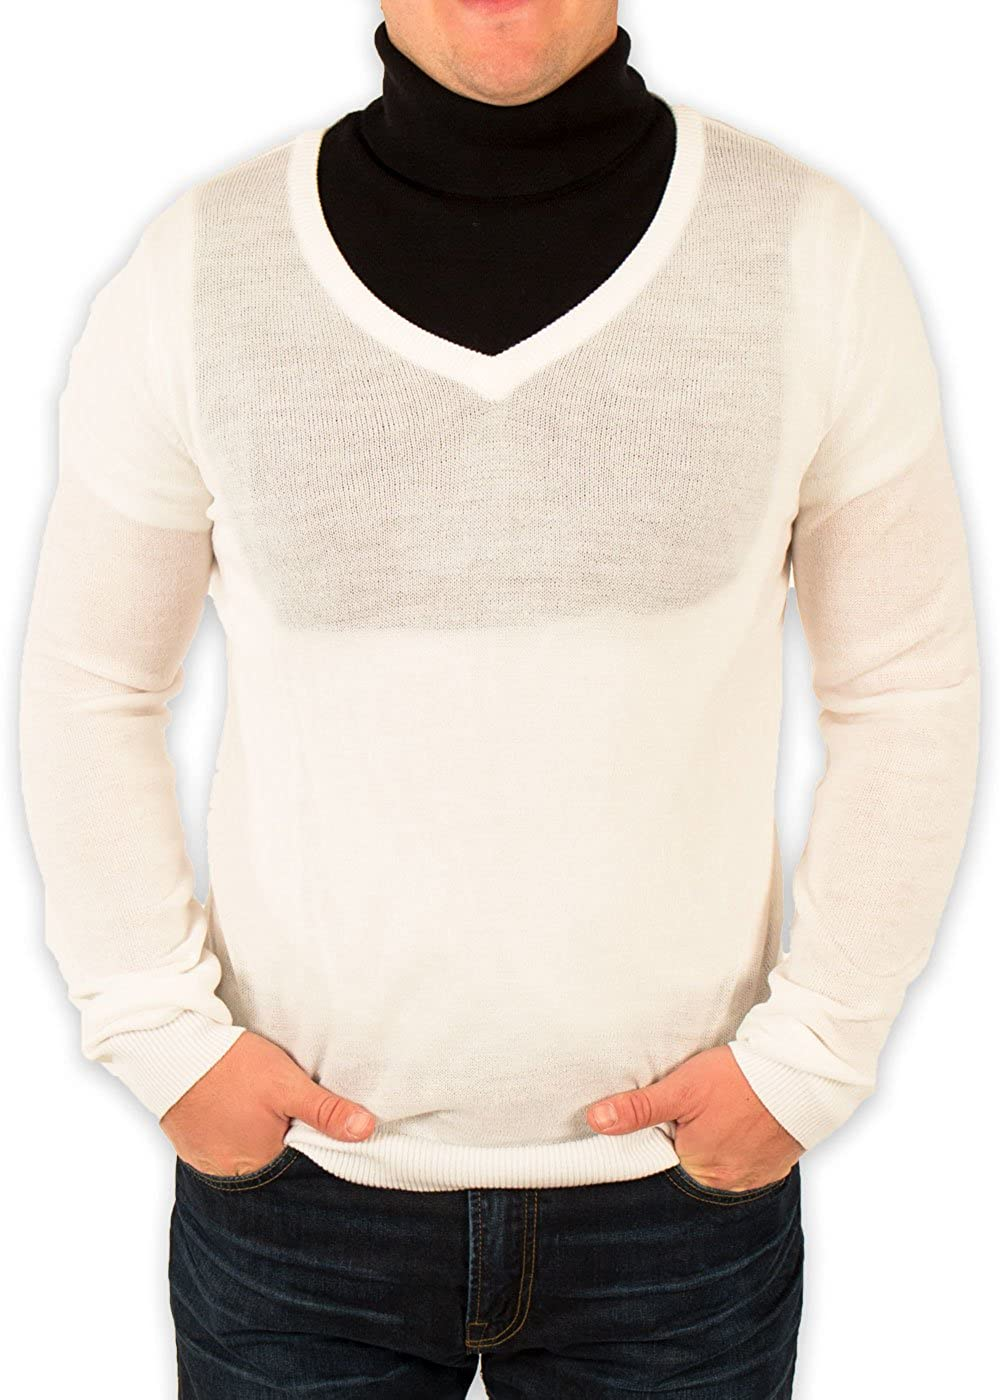 Men's Redneck Cousin V-Neck White Sweater with Black Dickey